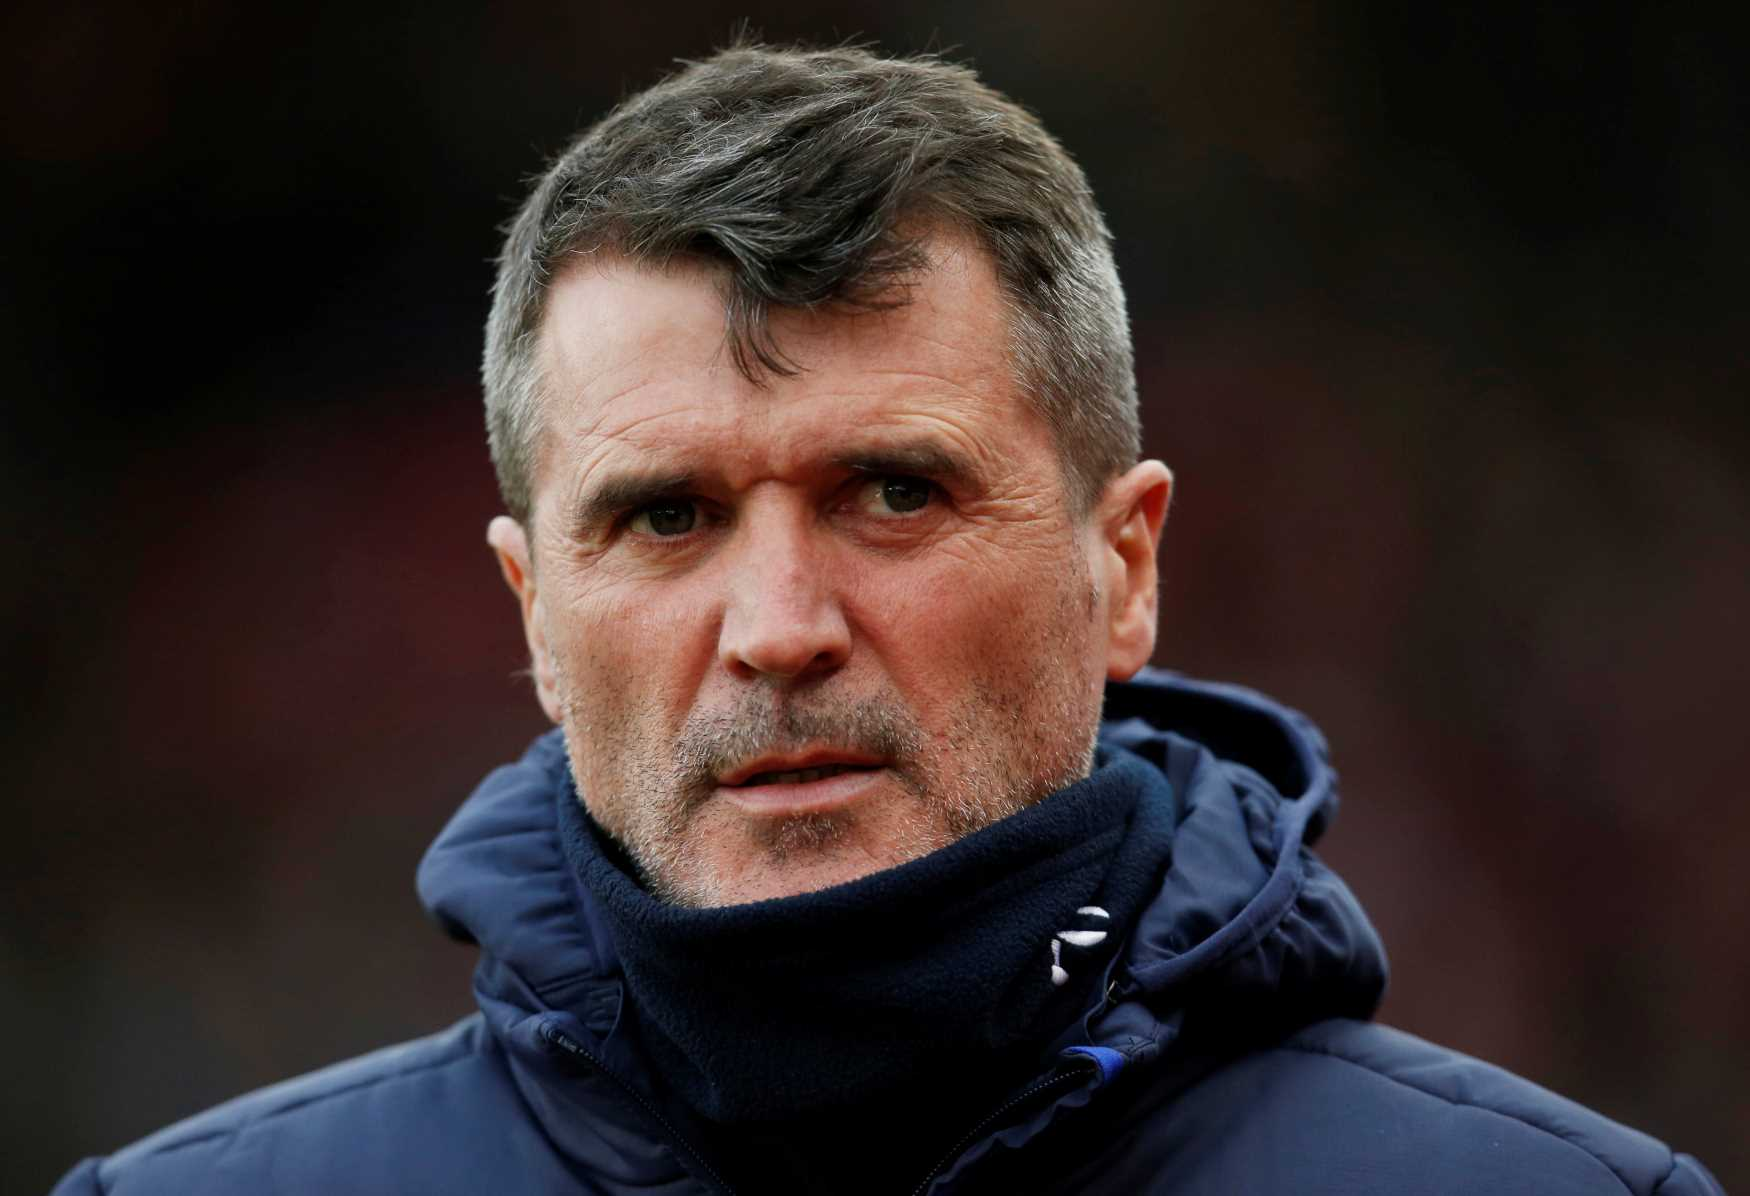 Raging Roy Keane's long list of feuds from Alex Ferguson to Patrick Vieira and Mick McCarthy to Alf-Inge Haaland – The Sun